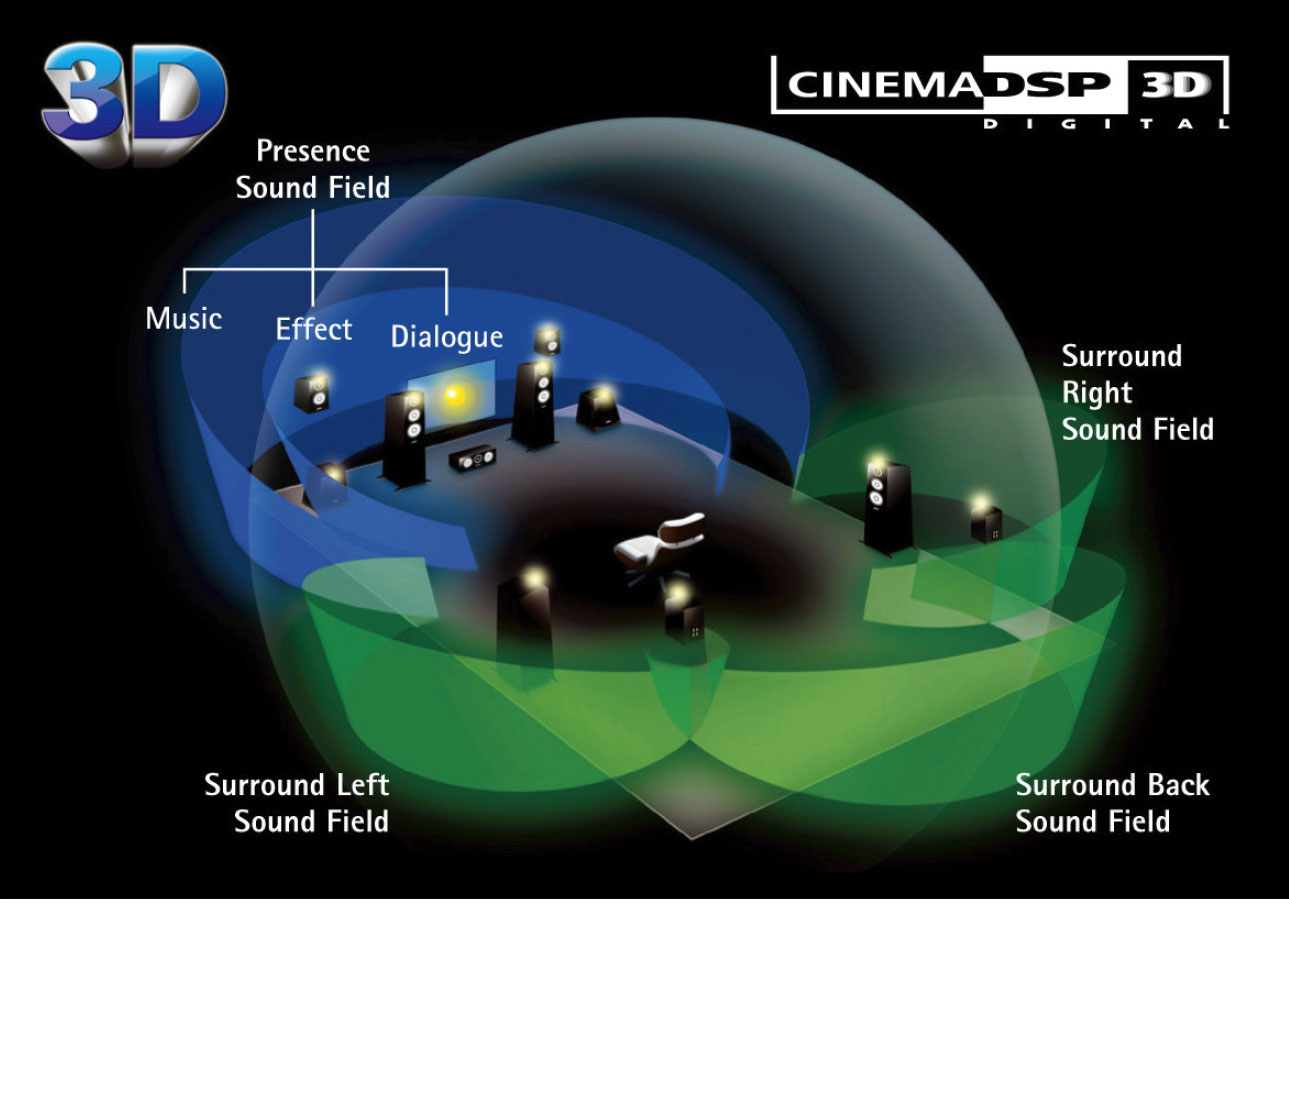 HD Audio with CINEMA DSP 3D and 9.2-Channel Sound